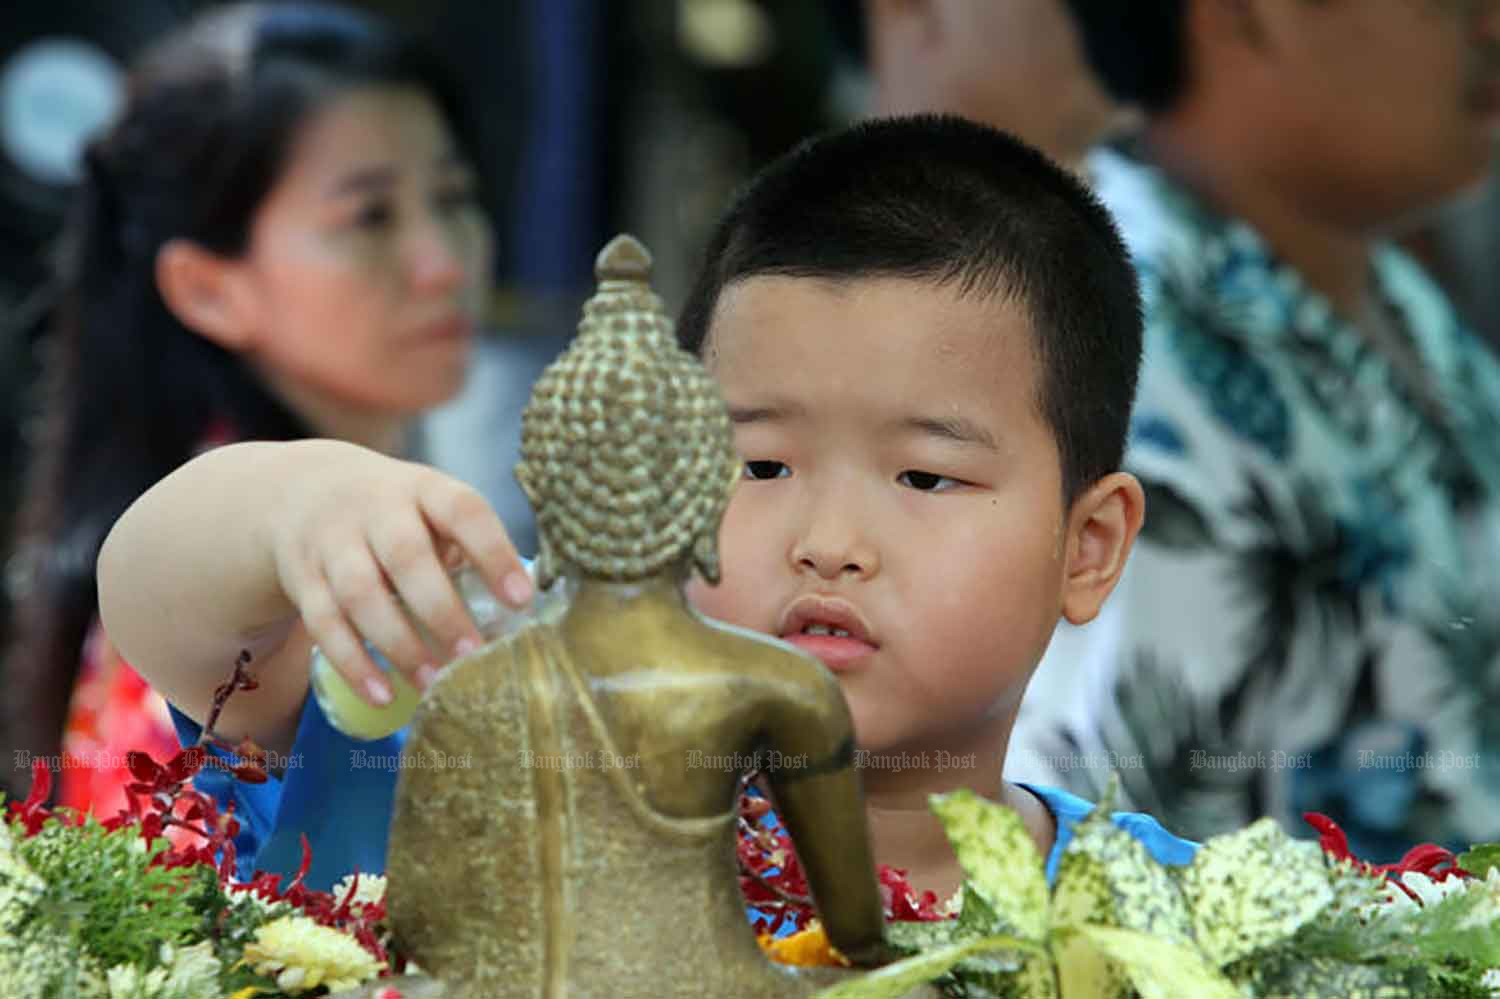 A boy bathes a Buddha figurine during Songkran in Bangkok in 2018. Authorities encourage people to concentrate on similar traditional activities during this year's festival,  because vigorous water splashing will not be allowed. (Bangkok Post file photo)